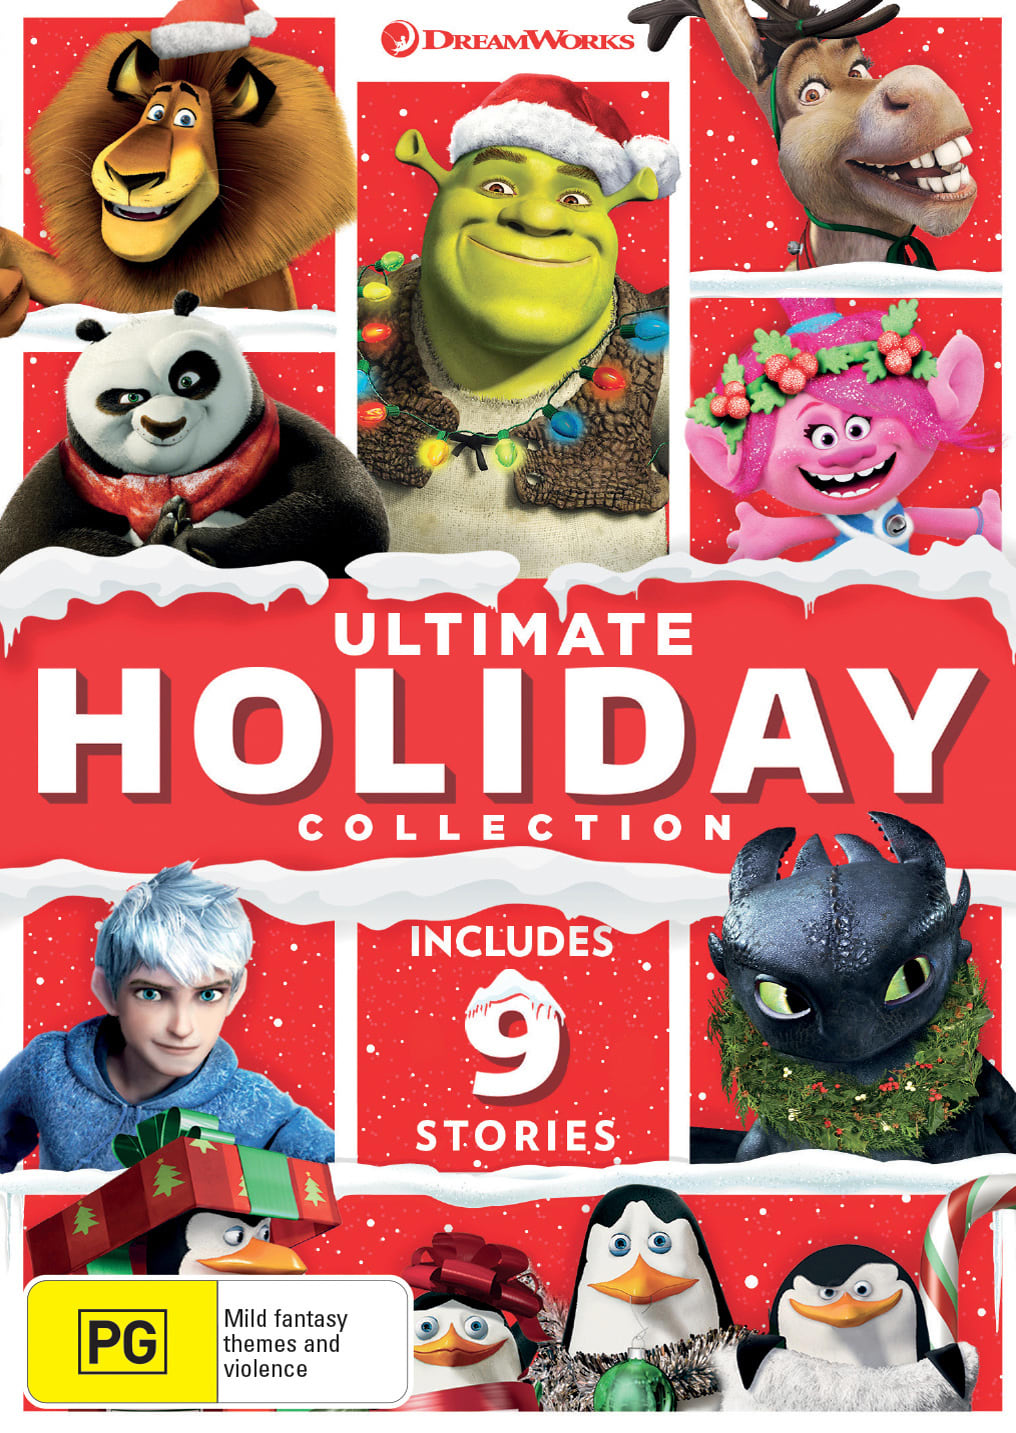 Dreamworks Ultimate Holiday Collection [DVD]